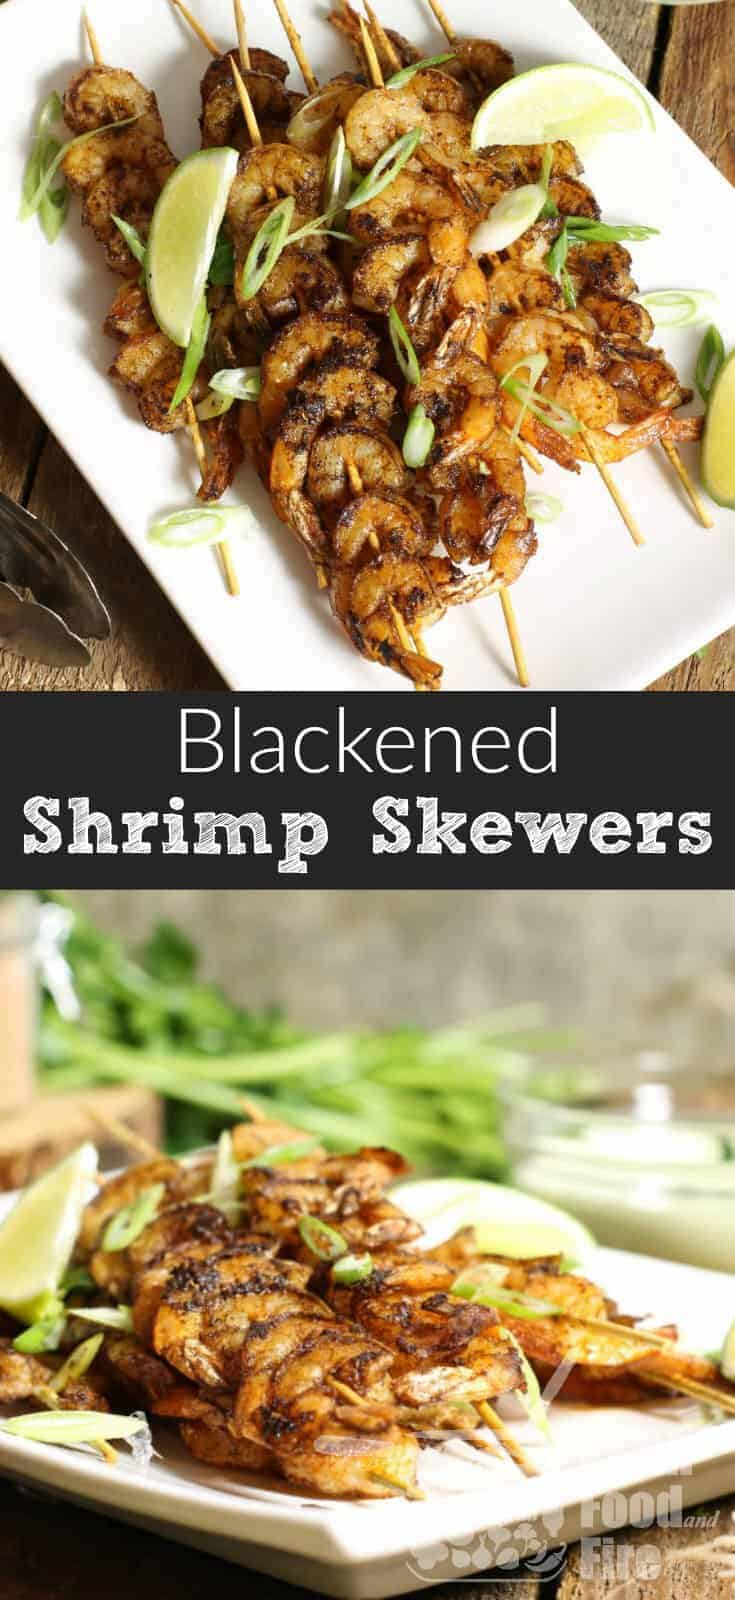 These blackened shrimp skewers are easy to make, and the ideal appetizer or party food item. They also make a great light meal when served with rice or salad and boast strong Cajun flavors. #cajun #shrimp #blackened #skewers